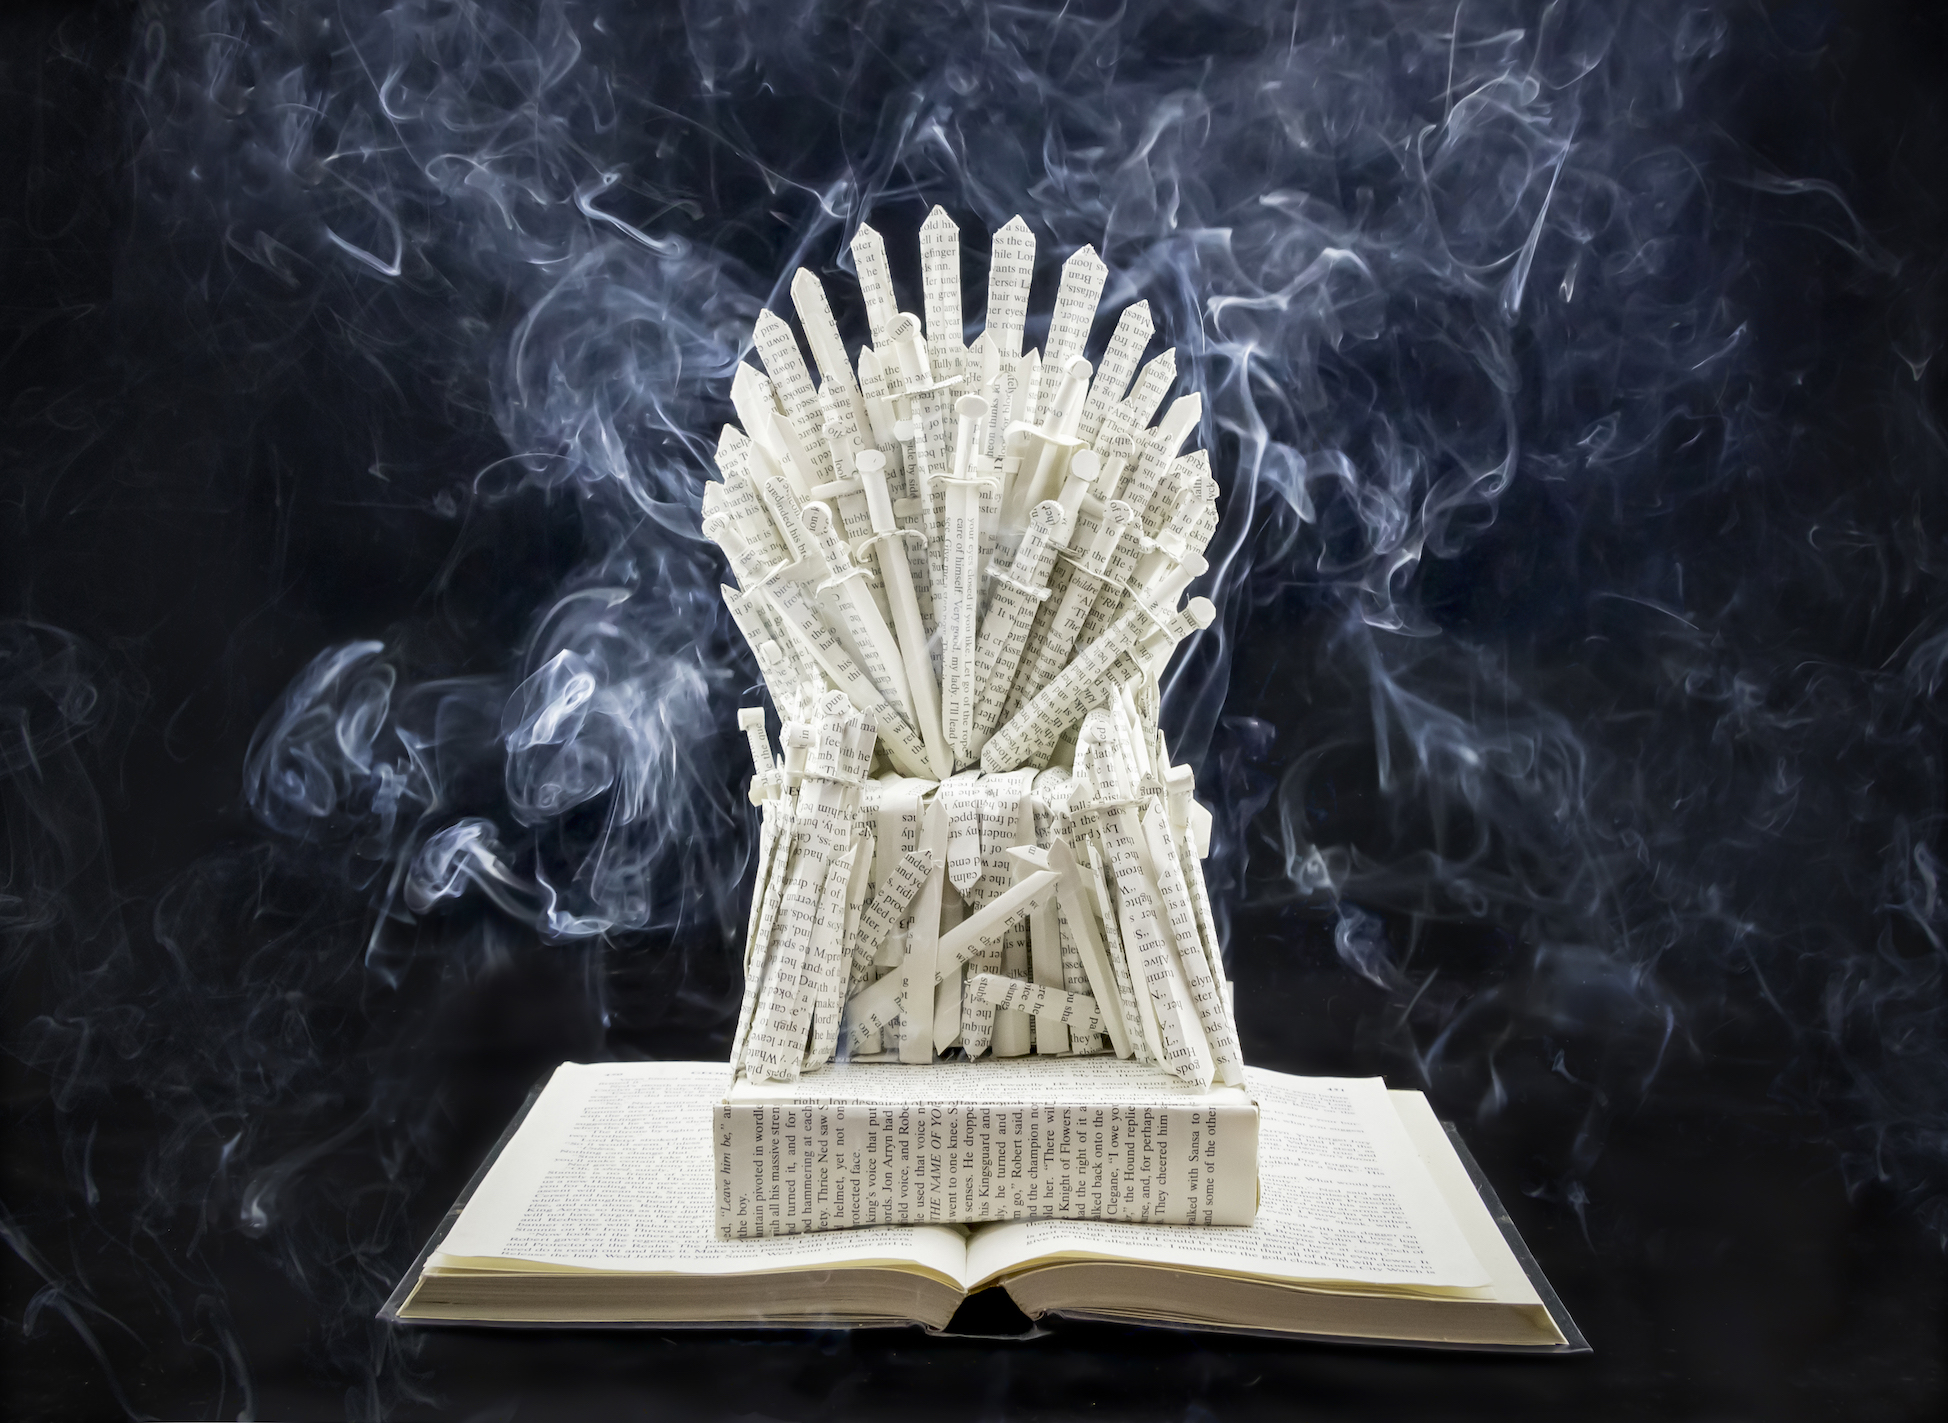 Game of Thrones - The Iron Throne Book Sculpture by Jamie B. Hannigan